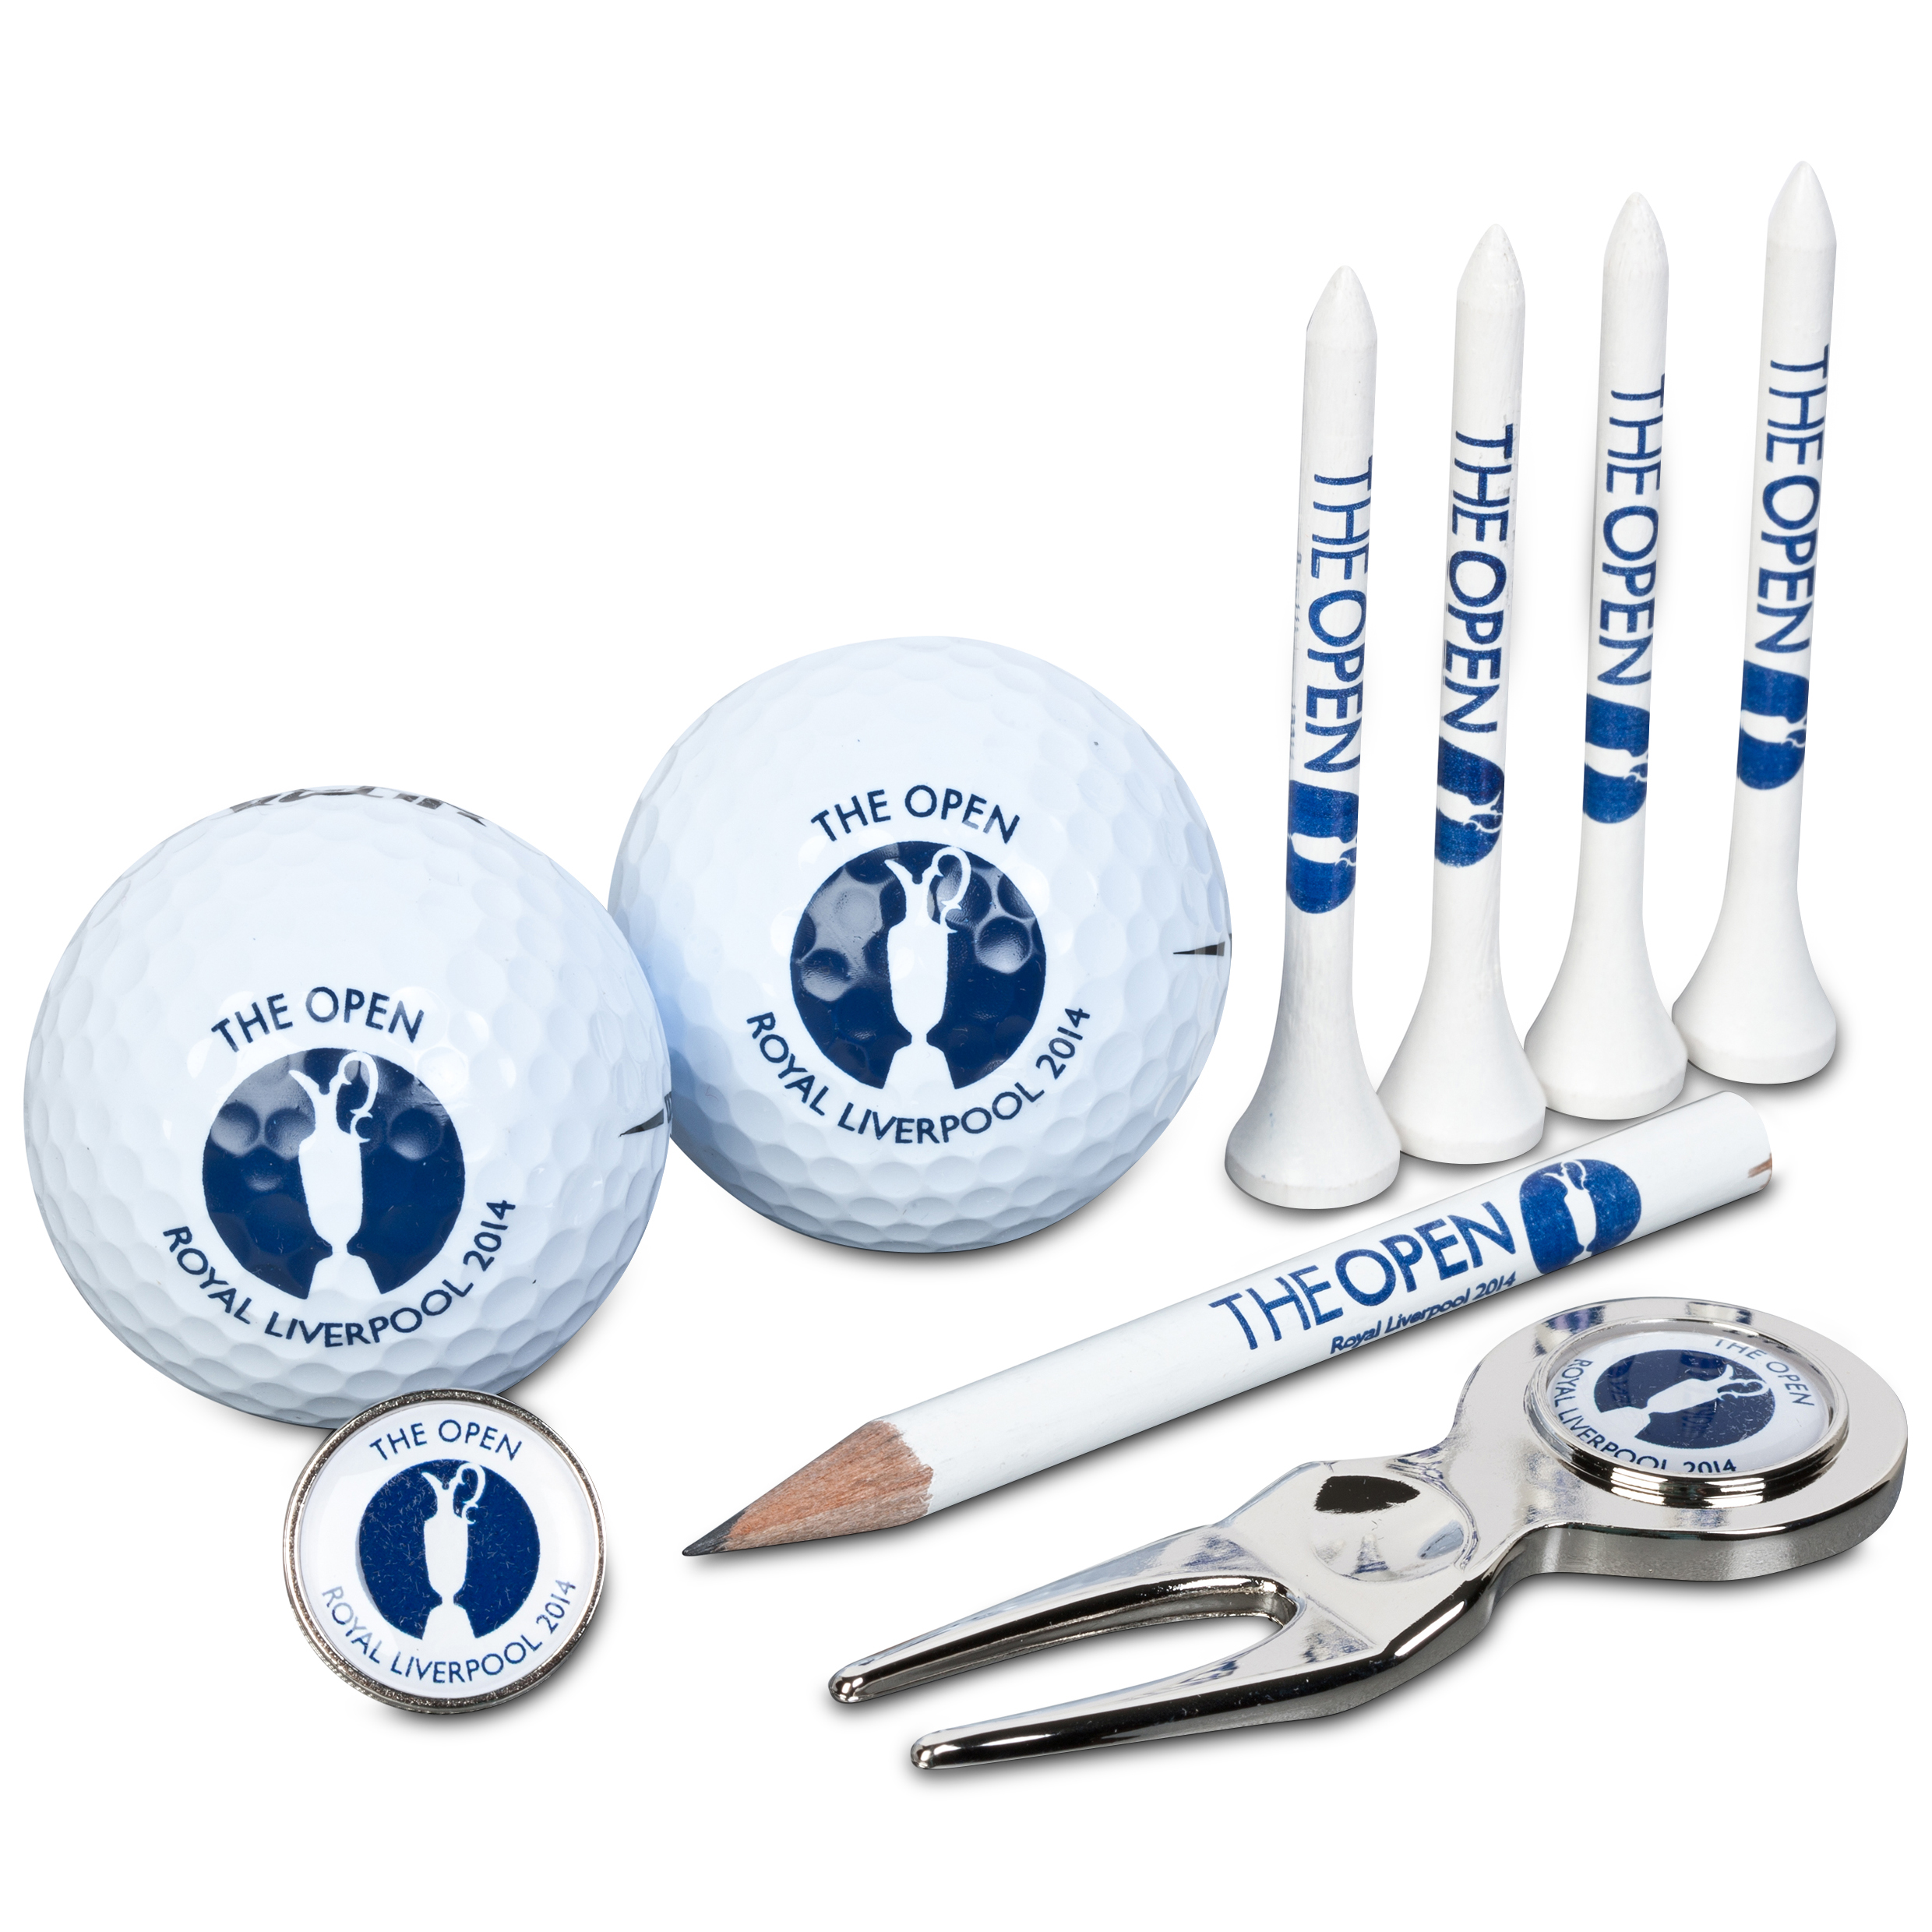 The Open Championship Royal Liverpool 2014 PF / BM / Tees / Pencil / 2GB